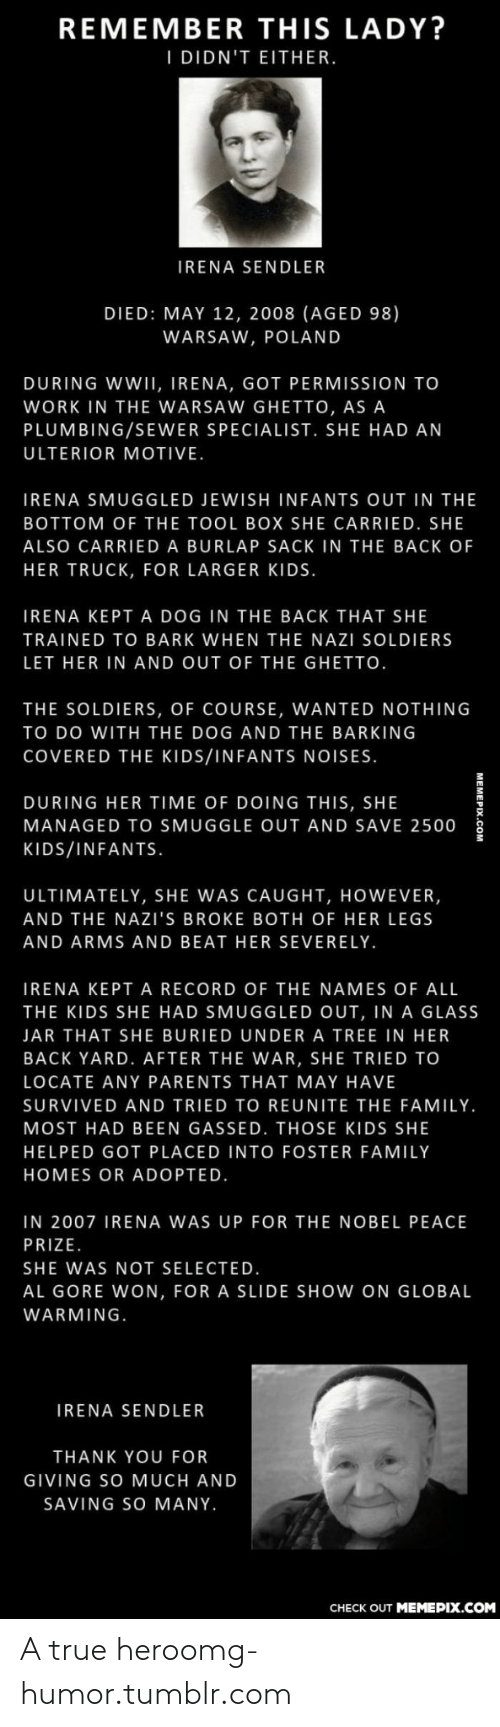 Irena: REMEMBER THIS LADY?  I DIDN'T EITHER.  IRENA SENDLER  DIED: MAY 12, 2008 (AGED 98)  WARSAW, POLAND  DURING WWII, IRENA, GOT PERMISSION TO  WORK IN THE WARSAW GHETTO, AS A  PLUMBING/SEWER SPECIALIST. SHE HAD AN  ULTERIOR MOTIVE.  IRENA SMUGGLED JEWISH INFANTS OUT IN THE  BOTTOM OF THE TOOL BOX SHE CARRIED. SHE  ALSO CARRIED A BURLAP SACK IN THE BACK OF  HER TRUCK, FOR LARGER KIDS.  IRENA KEPT A DOG IN THE BACK THAT SHE  TRAINED TO BARK WHEN THE NAZI SOLDIERS  LET HER IN AND OUT OF THE GHETTO.  THE SOLDIERS, OF COURSE, WANTED NOTHING  TO DO WITH THE DOG AND THE BARKING  COVERED THE KIDS/INFANTS NOISES.  DURING HER TIME OF DOING THIS, SHE  MANAGED TO SMUGGLE OUT AND SAVE 2500  KIDS/INFANTS.  ULTIMATELY, SHE WAS CAUGHT, HOWEVER,  AND THE NAZI'S BROKE BOTH OF HER LEGS  AND ARMS AND BEAT HER SEVERELY.  IRENA KEPT A RECORD OF THE NAMES OF ALL  THE KIDS SHE HAD SMUGGLED OUT, IN A GLASS  JAR THAT SHE BURIED UNDER A TREE IN HER  BACK YARD. AFTER THE WAR, SHE TRIED TO  LOCATE ANY PARENTS THAT MAY HAVE  SURVIVED AND TRIED TO REUNITE THE FAMILY.  MOST HAD BEEN GASSED. THOSE KIDS SHE  HELPED GOT PLACED INTO FOSTER FAMILY  HOMES OR ADOPTED.  IN 2007 IRENA WAS UP FOR THE NOBEL PEACE  PRIZE.  SHE WAS NOT SELECTED.  AL GORE WON, FOR A SLIDE SHOW ON GLOBAL  WARMING.  IRENA SENDLER  THANK YOU FOR  GIVING SO MUCH AND  SAVING SO MANY.  CНЕCK OUT MEМЕРIХ.COM A true heroomg-humor.tumblr.com